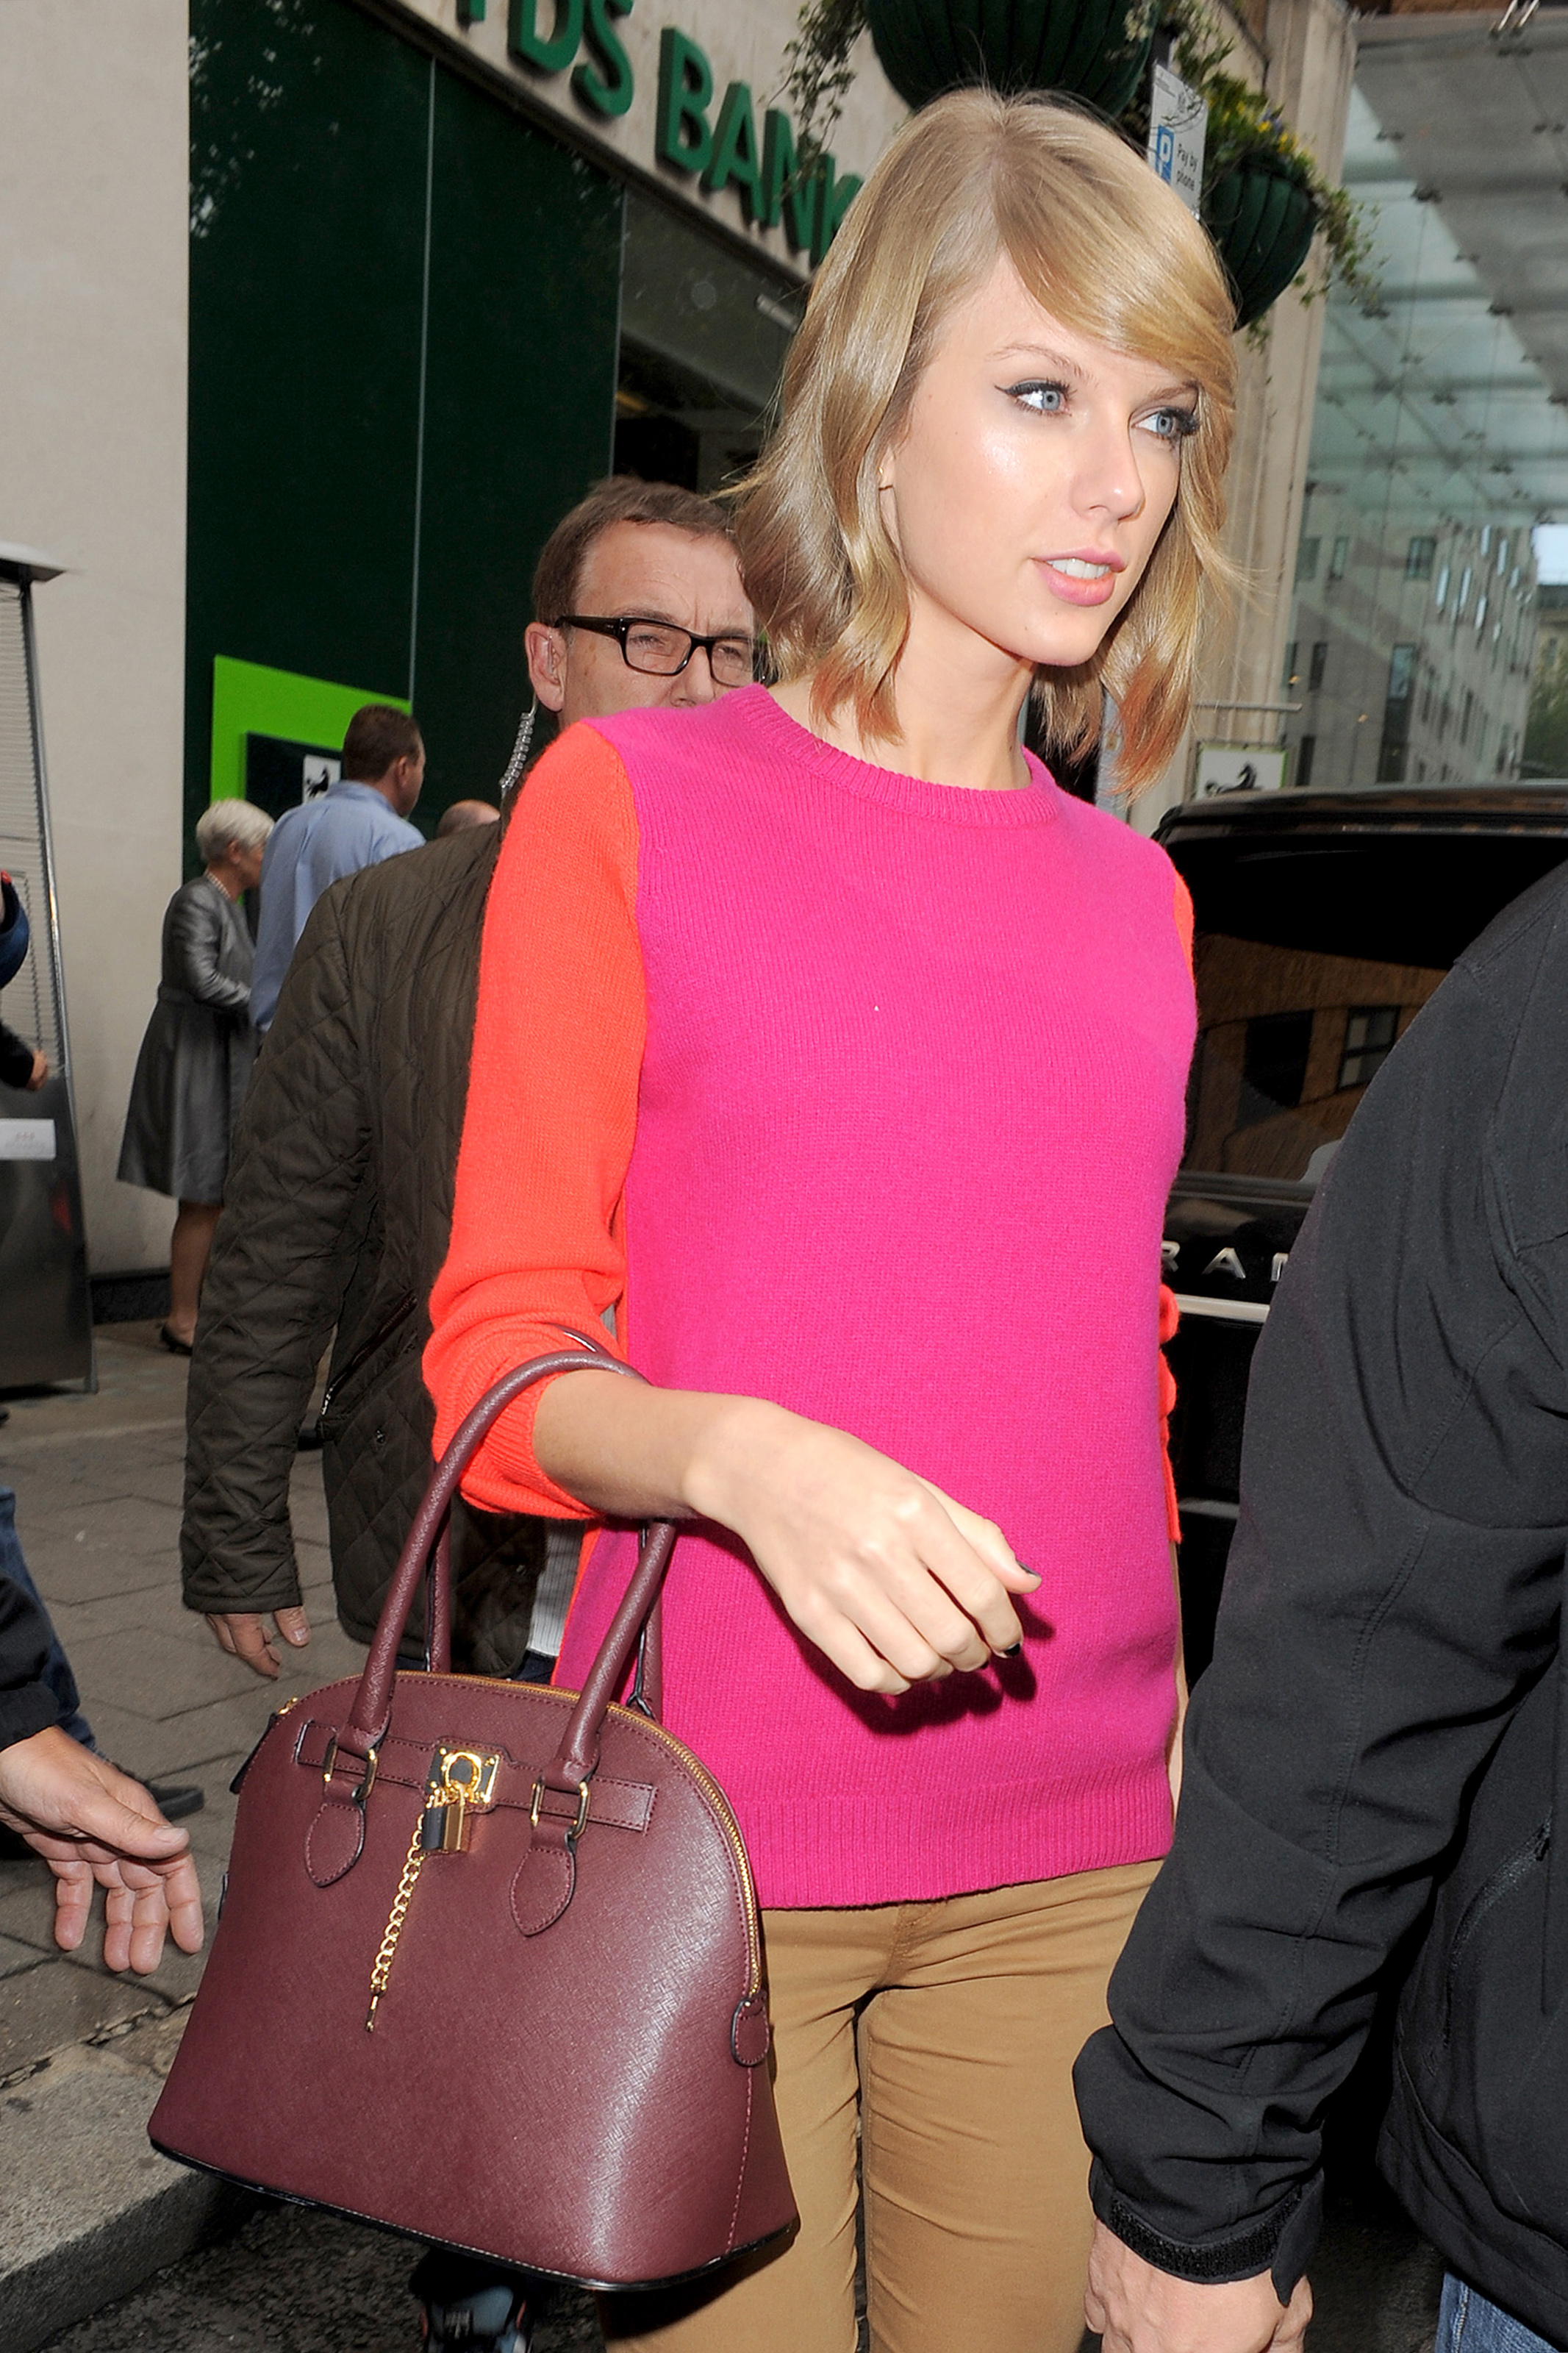 http://taylorpictures.net/albums/candids/2014/10-10leavingsketchrestaurant/060.jpg